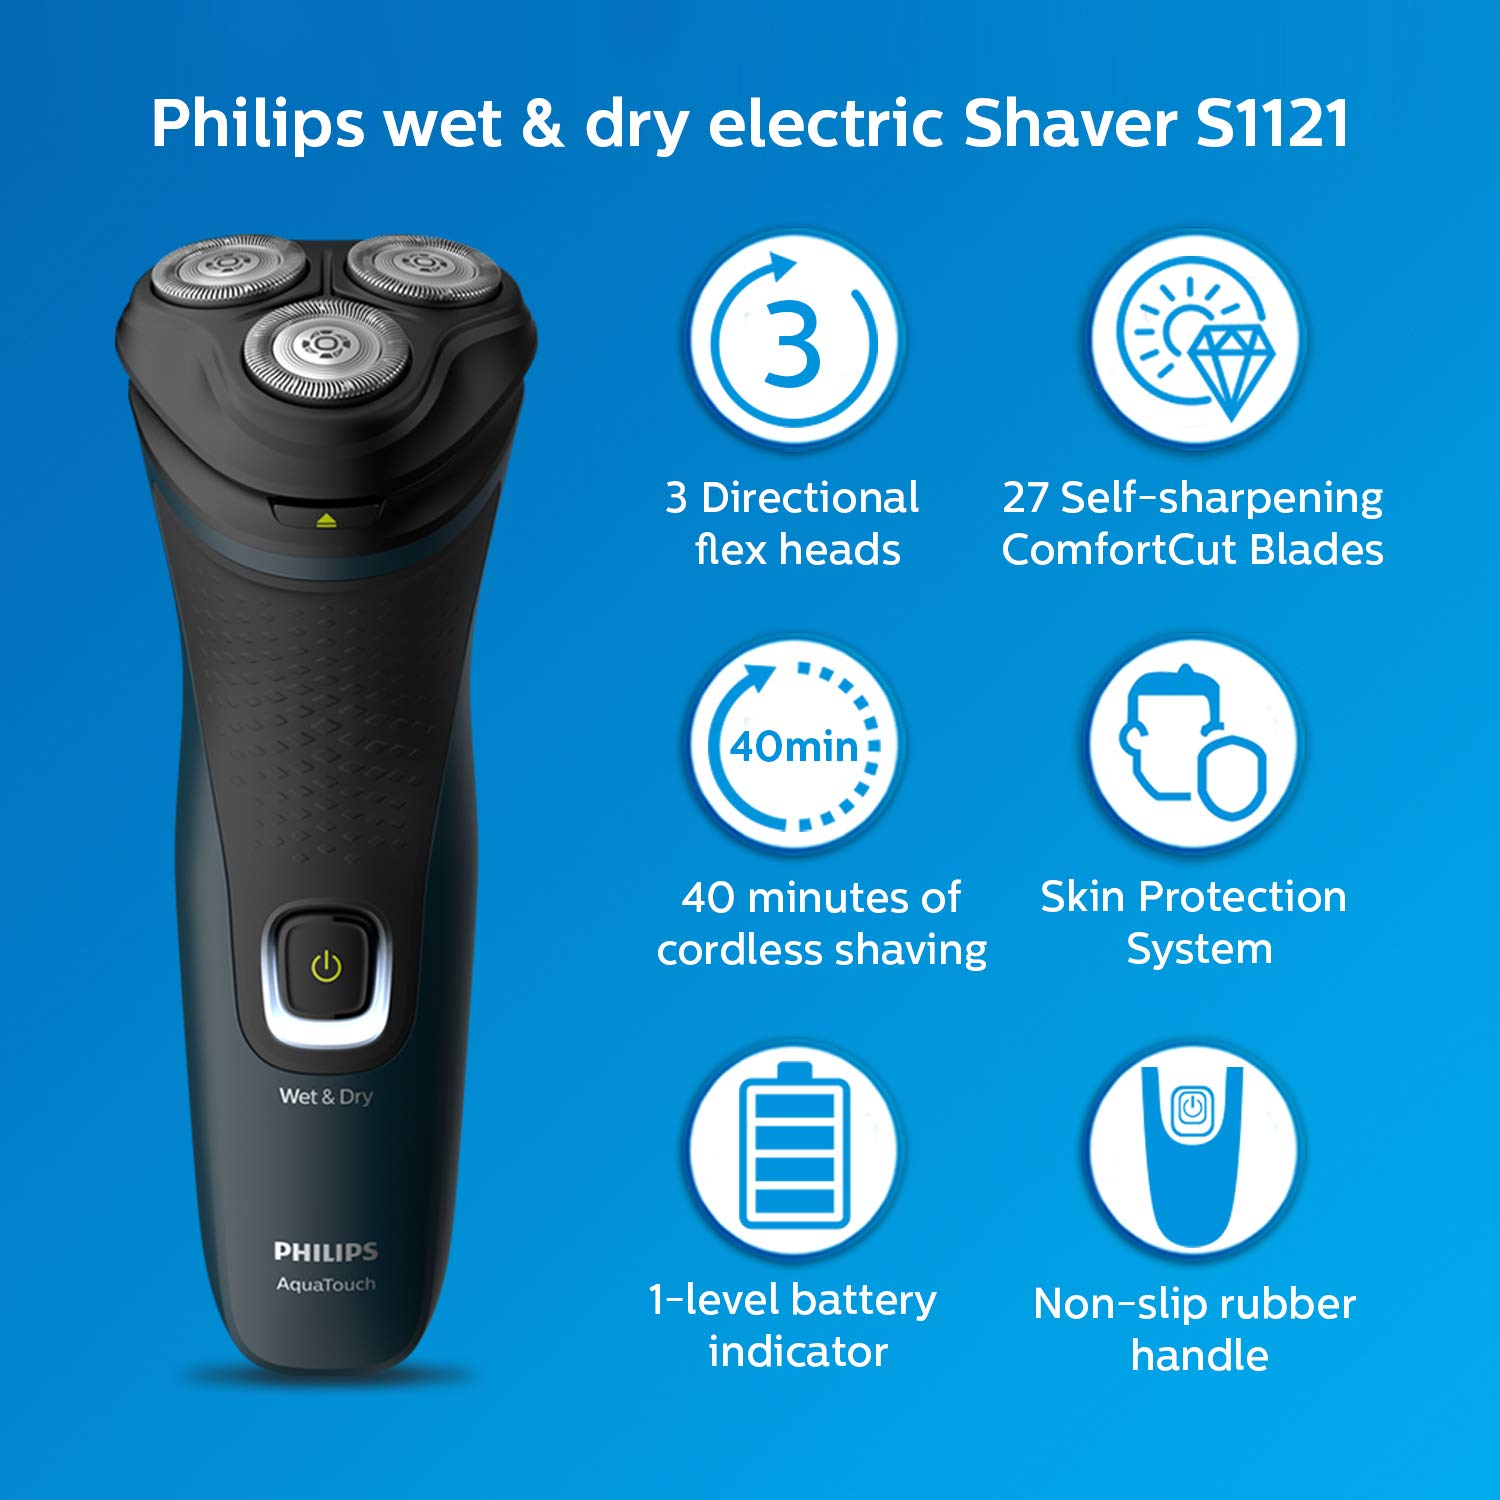 Philips Electric Shaver S1121/45, 3D Pivot & Flex Heads, 27 Comfort Cut Blades, Up to 40 Min of Shaving enlarge